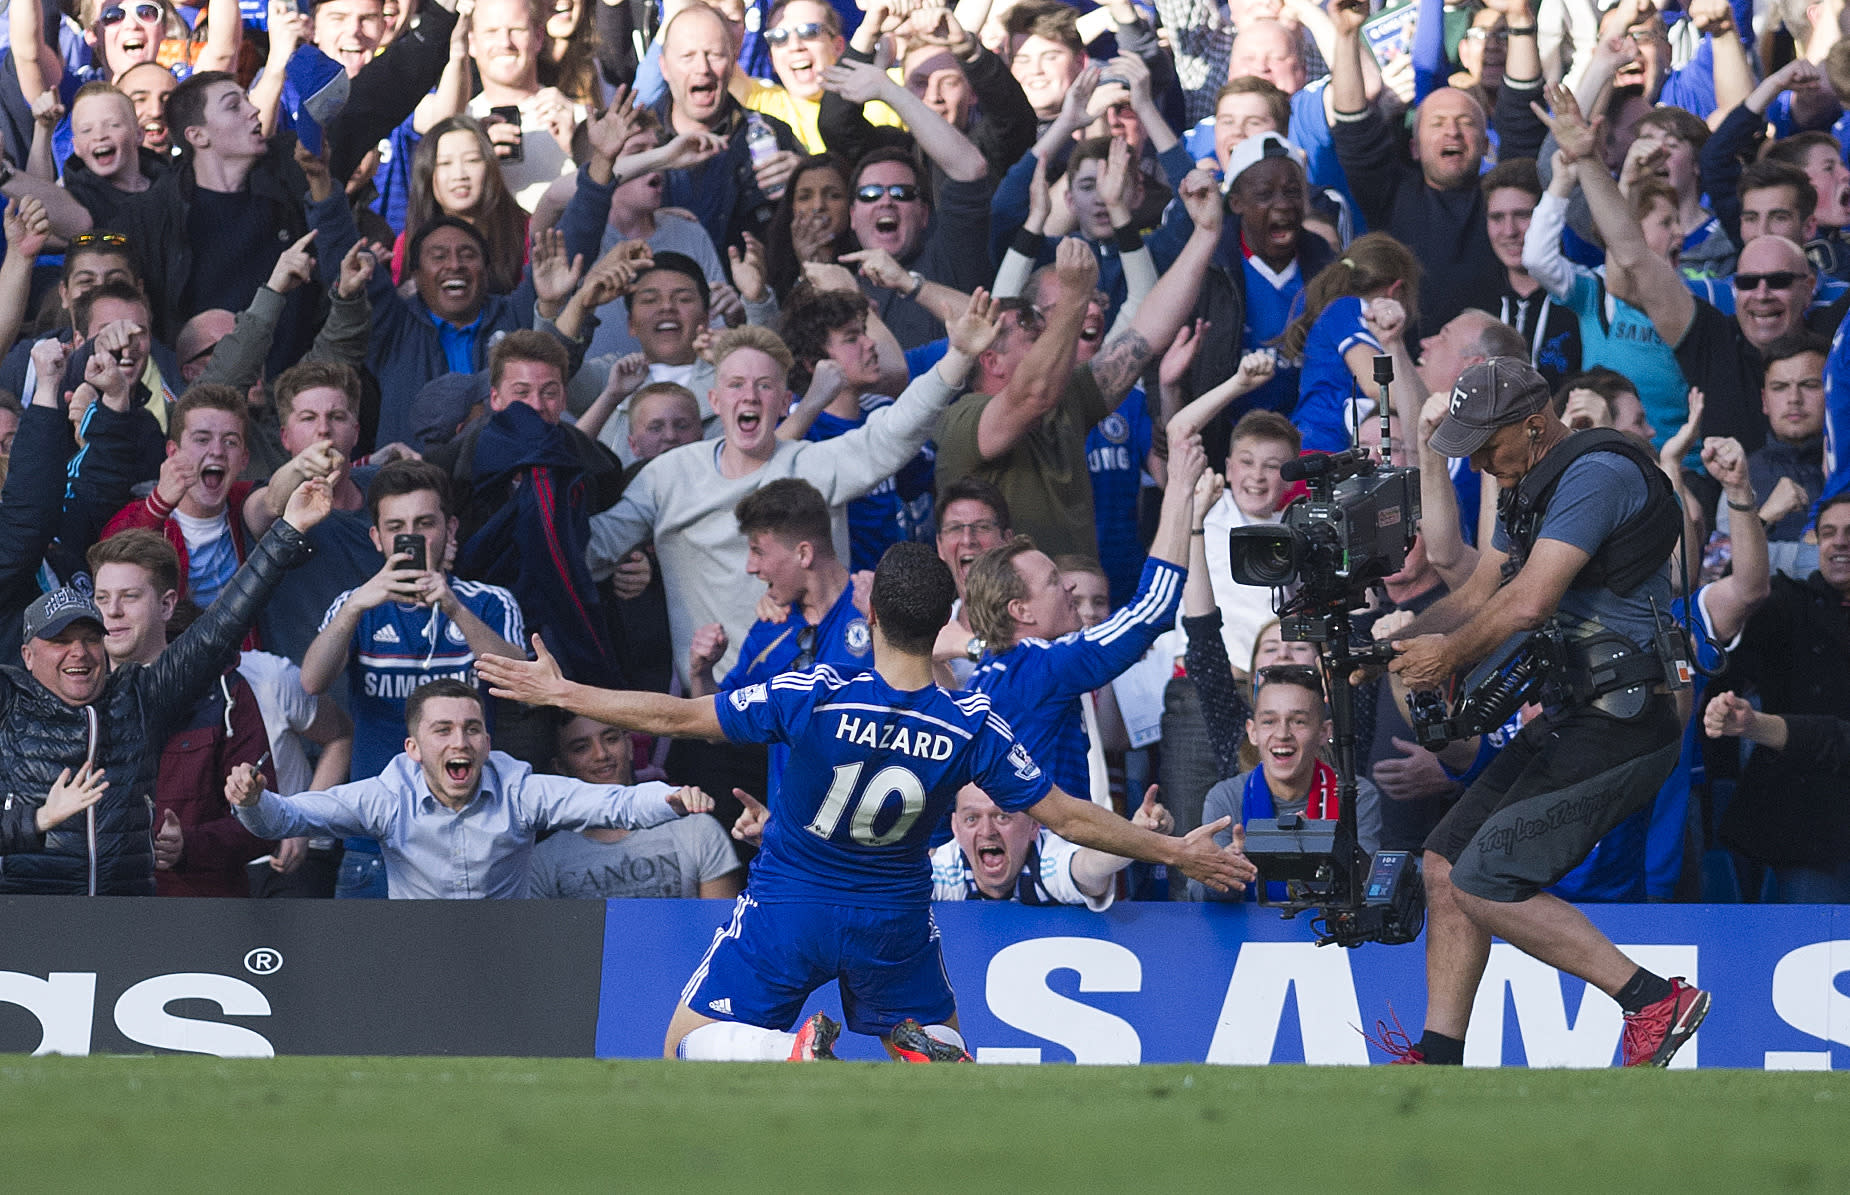 Chelsea easing to EPL title; Arsenal back in FA Cup final